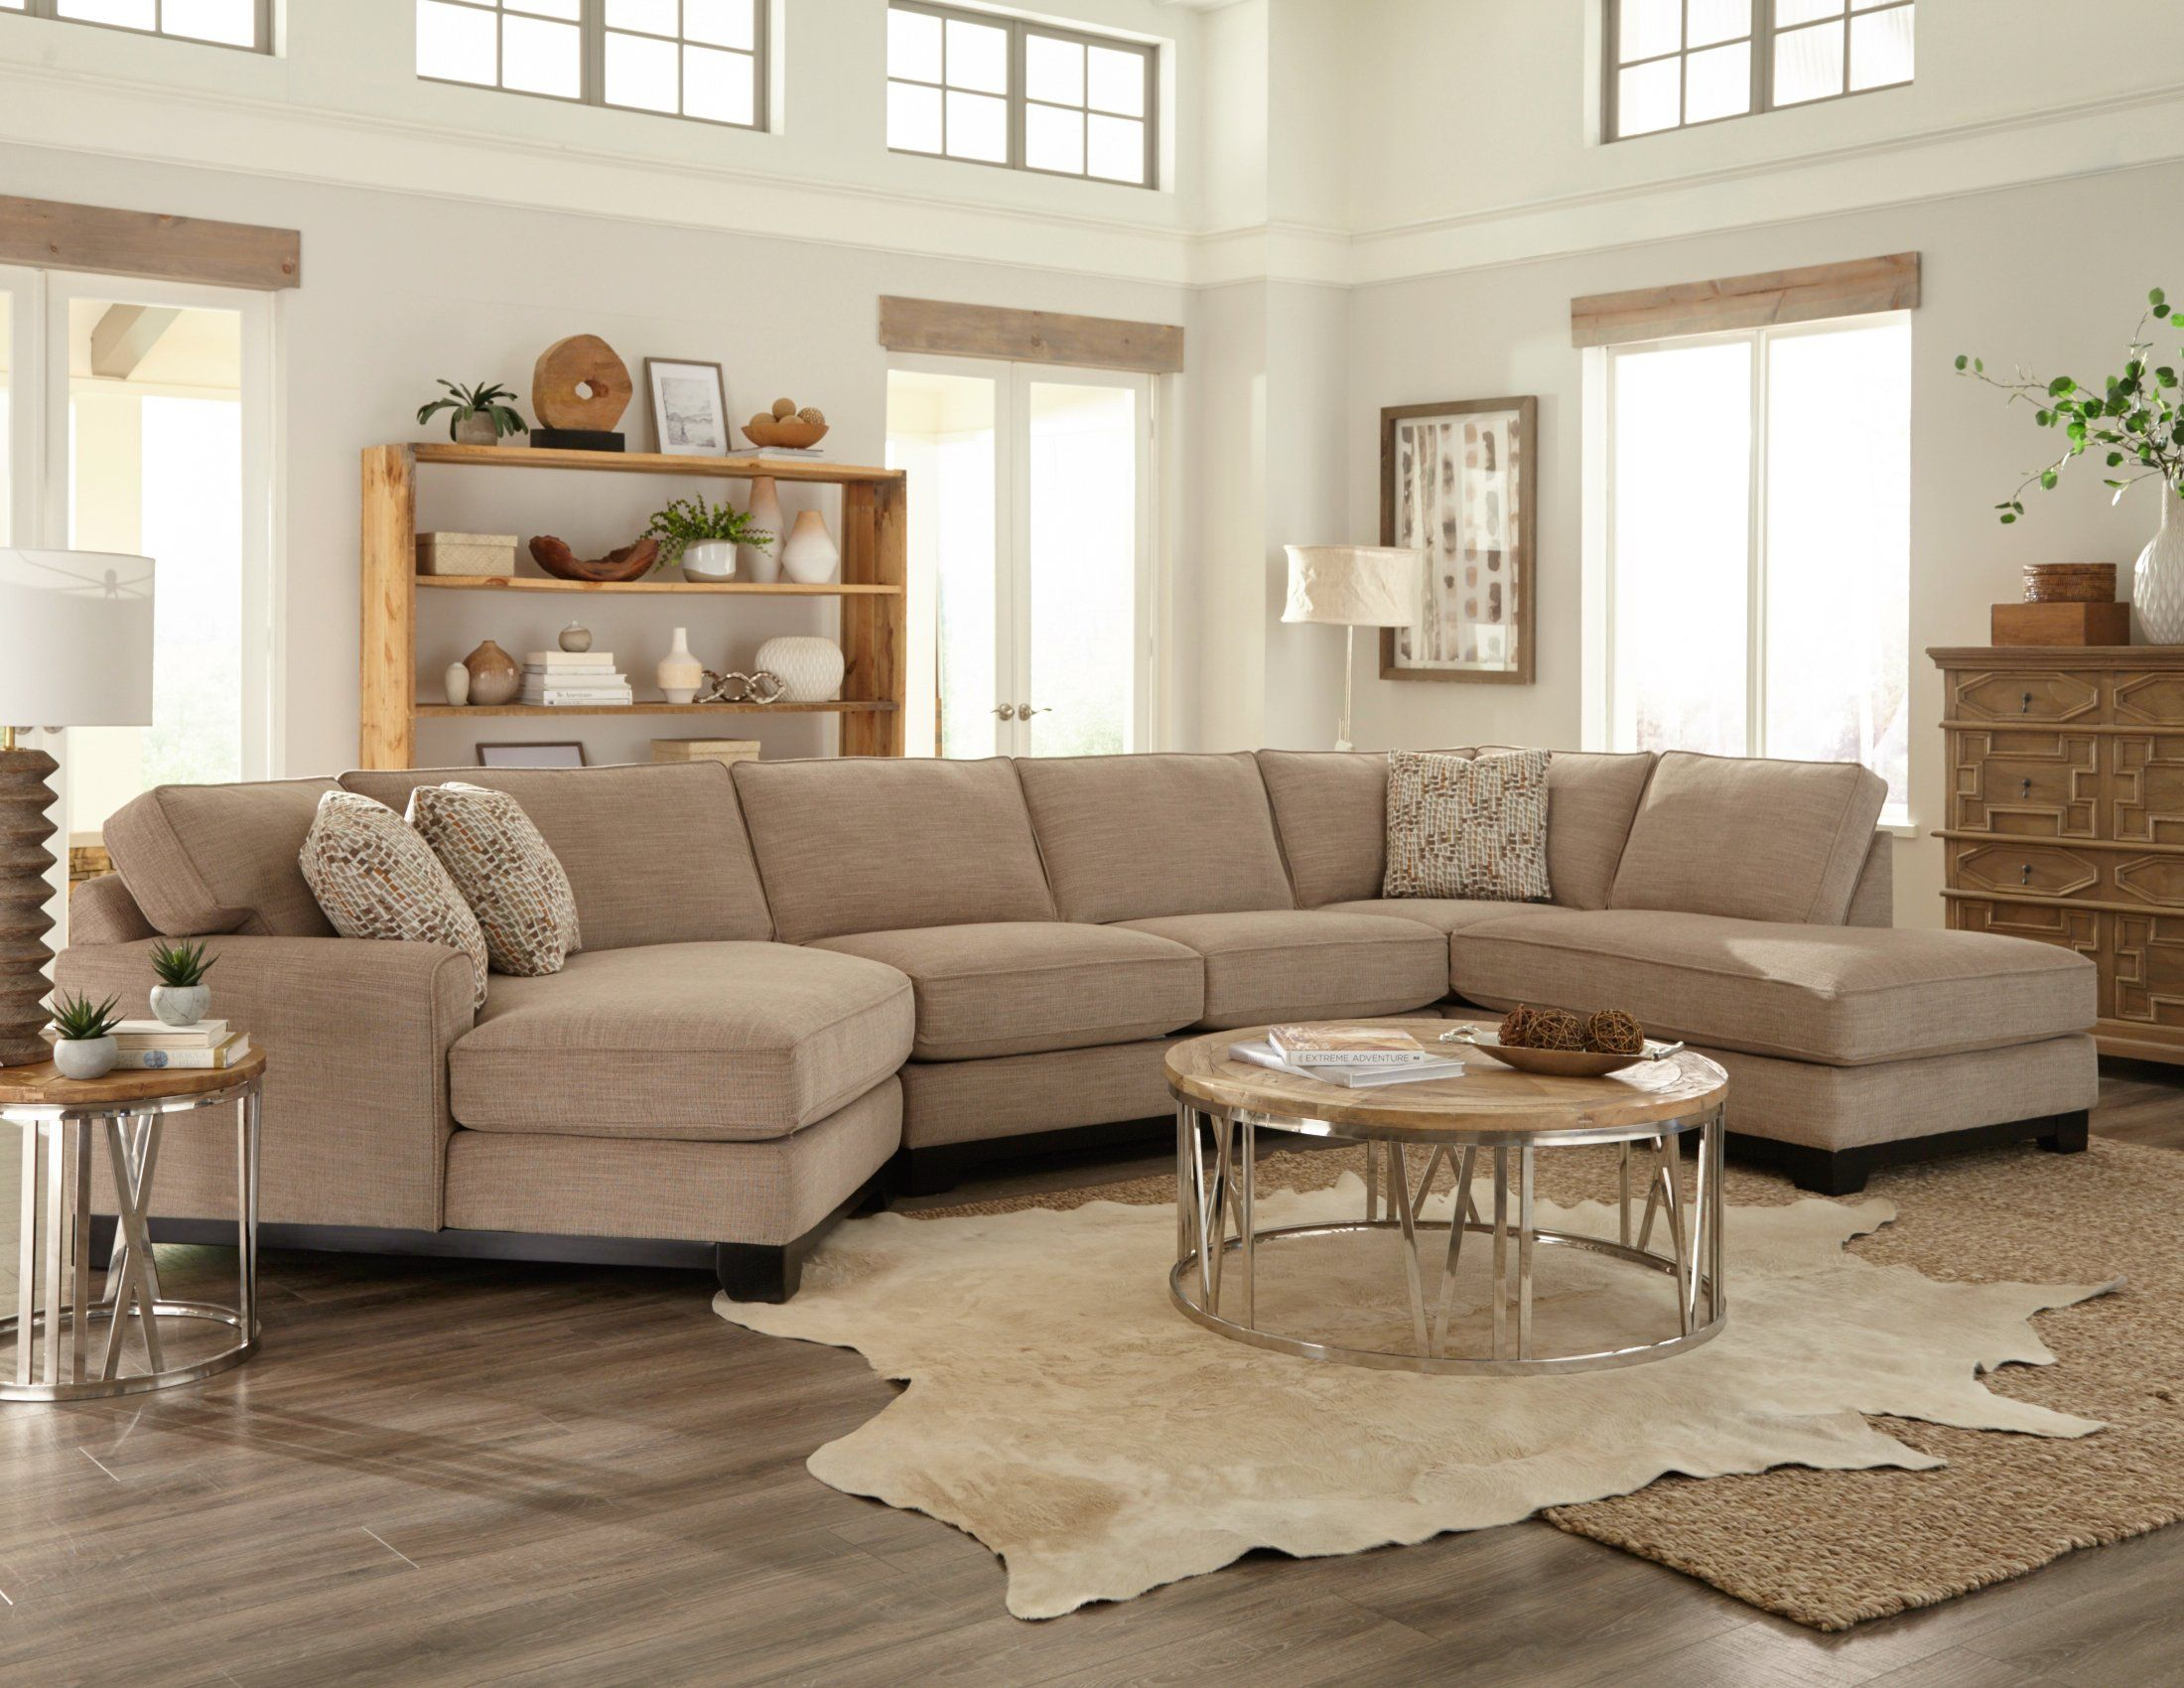 Beige 3 Piece Sectional Sofa With Raf Chaise Pisces Rc Willey Furniture Store Tan Couch Living Room Beige And White Living Room Living Room Decor Tips #rc #willey #living #room #set